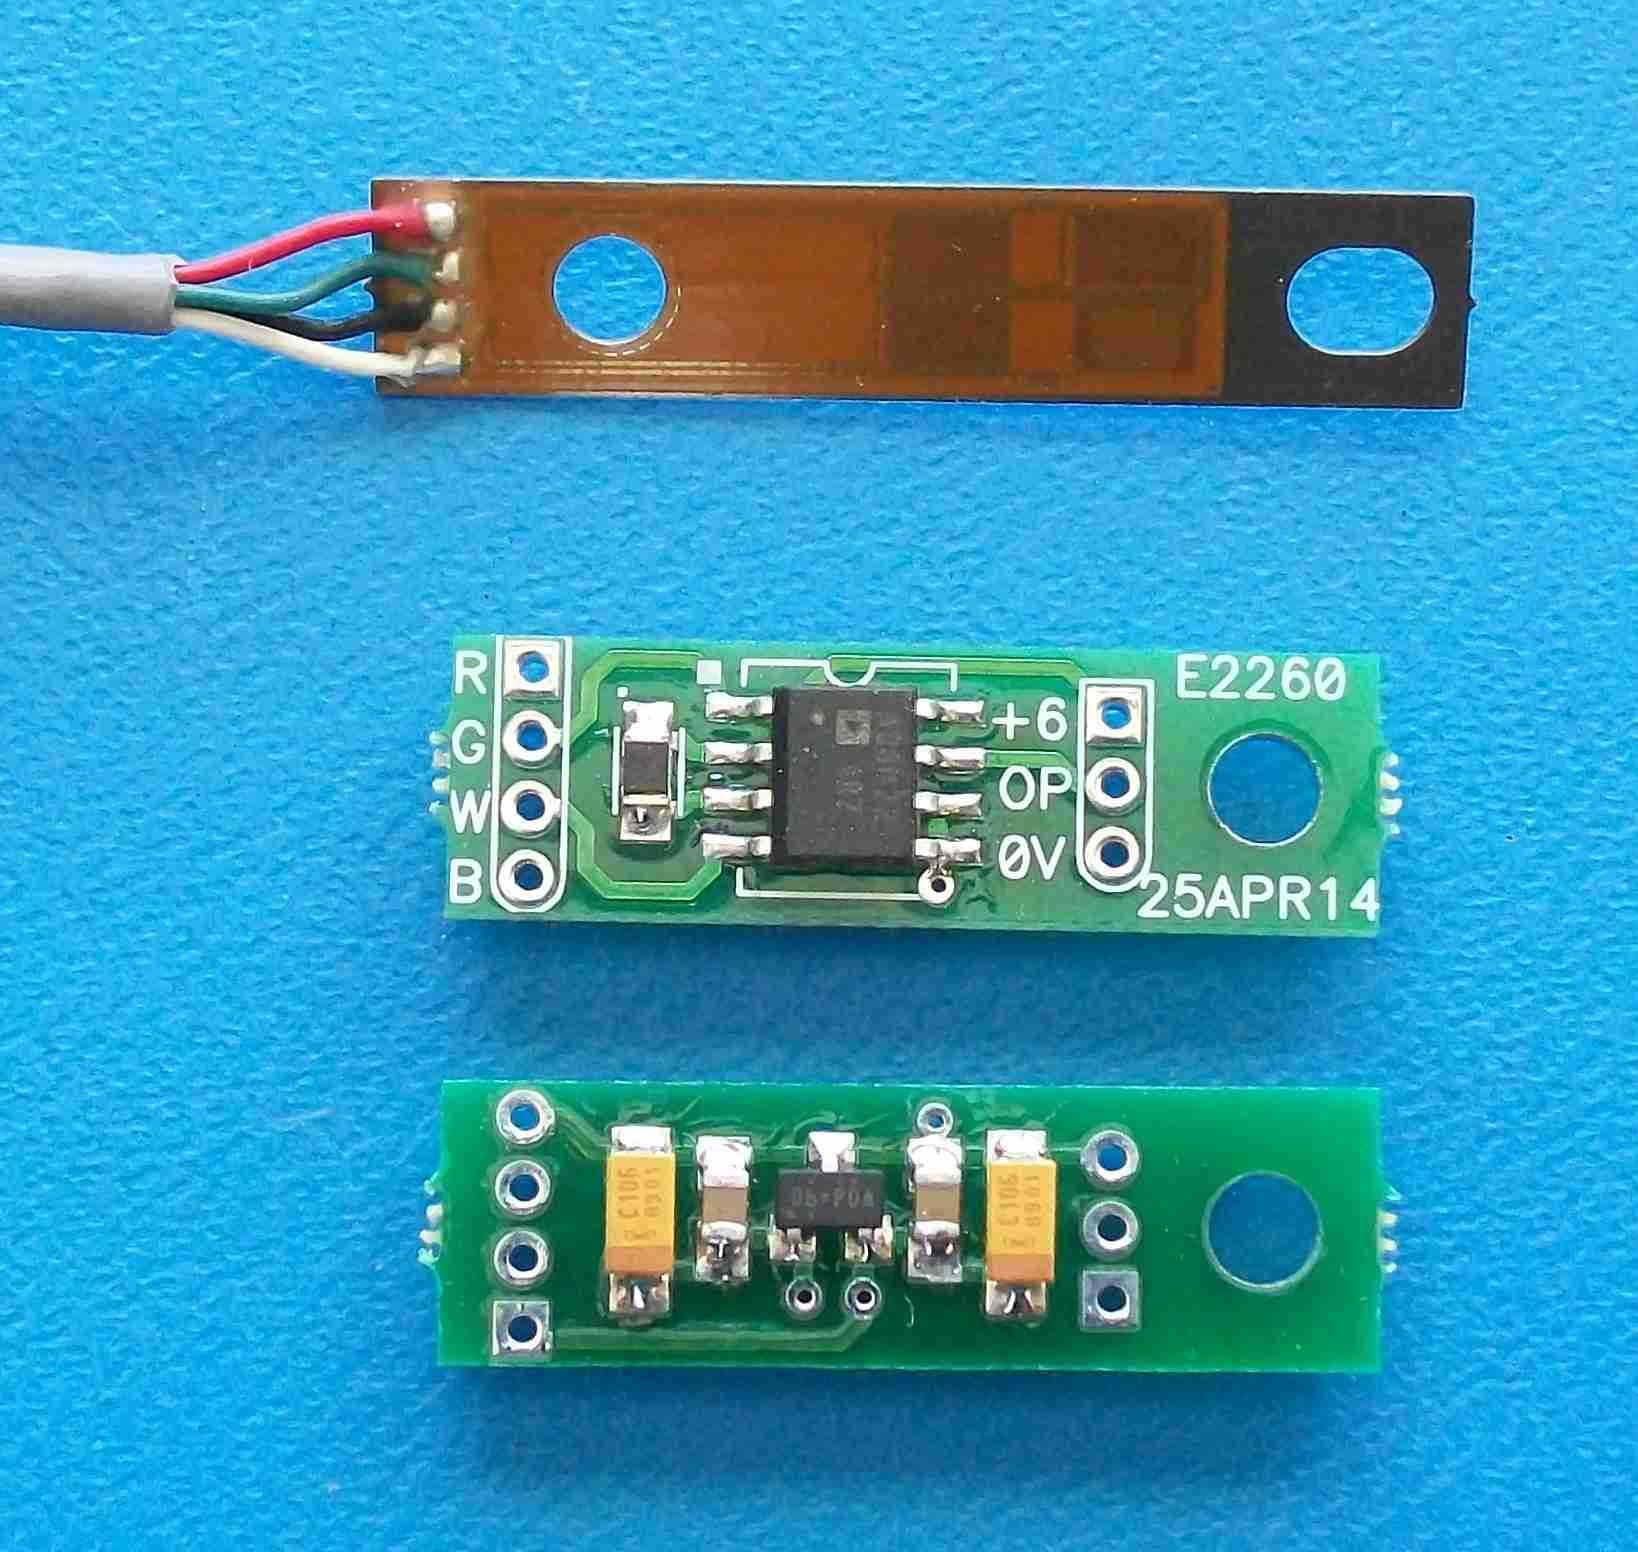 E2260 Strain Gauge Amplifier